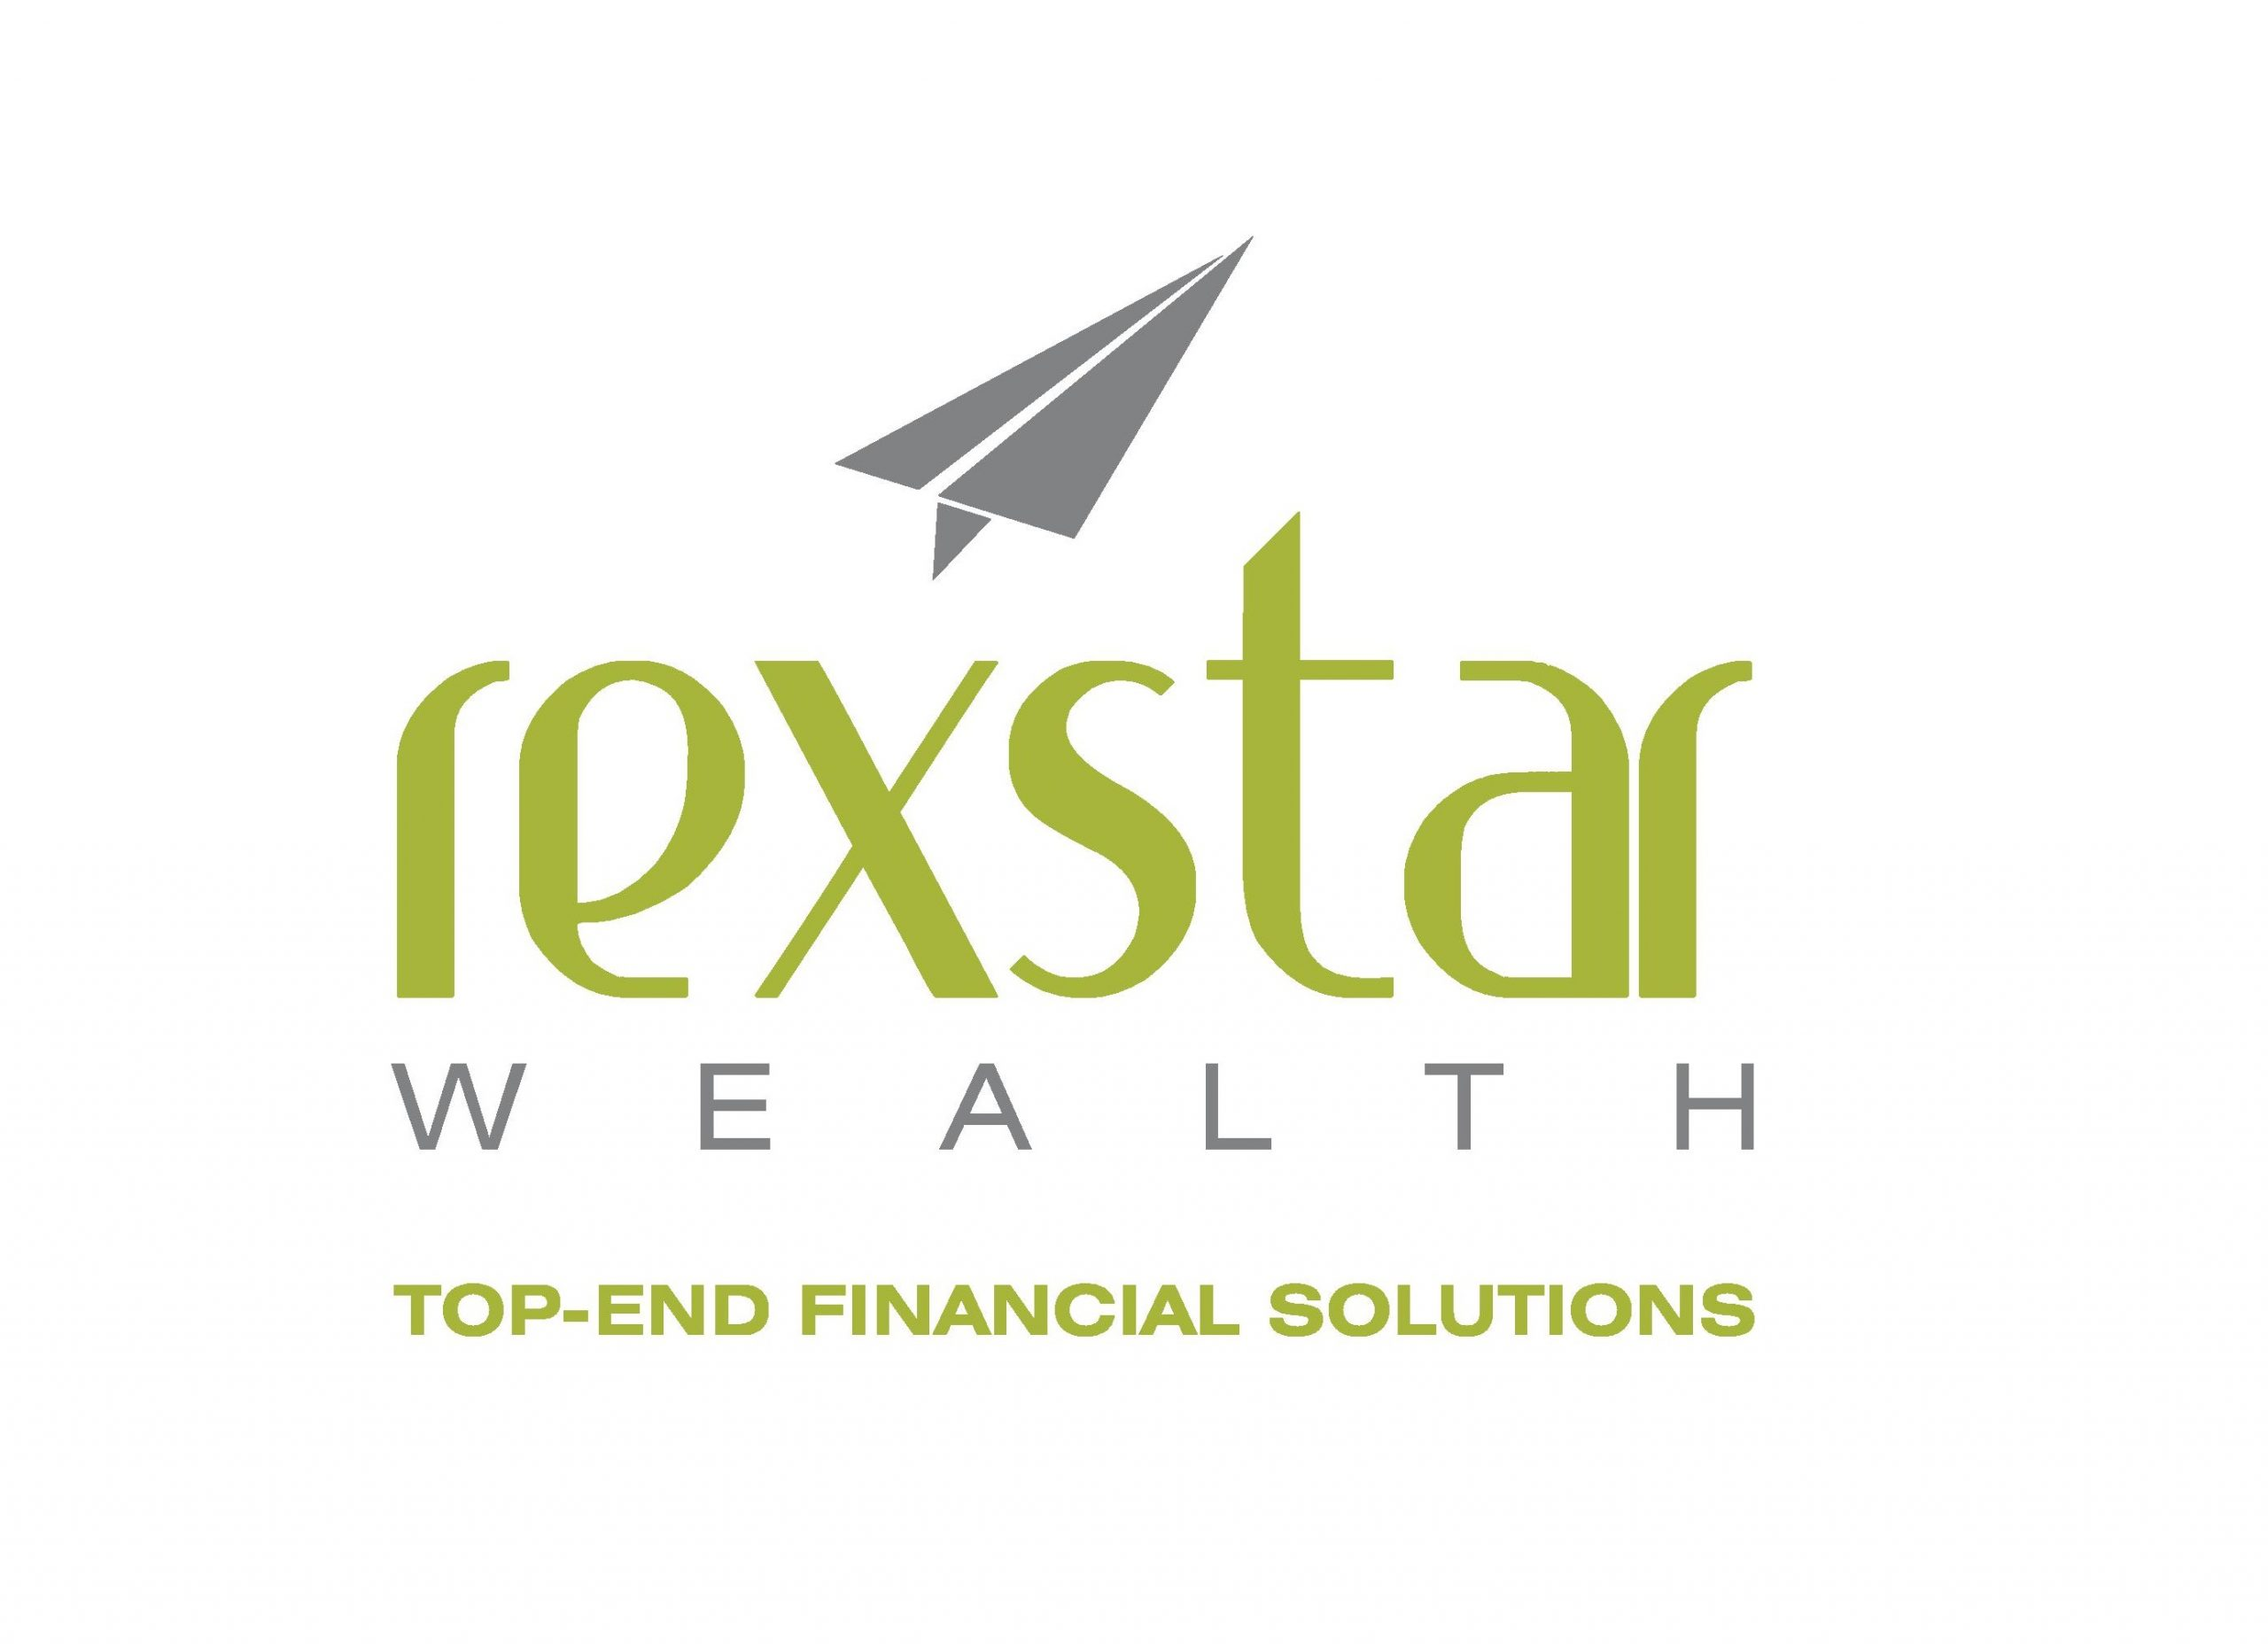 Friends of the College - Rexstar Wealth